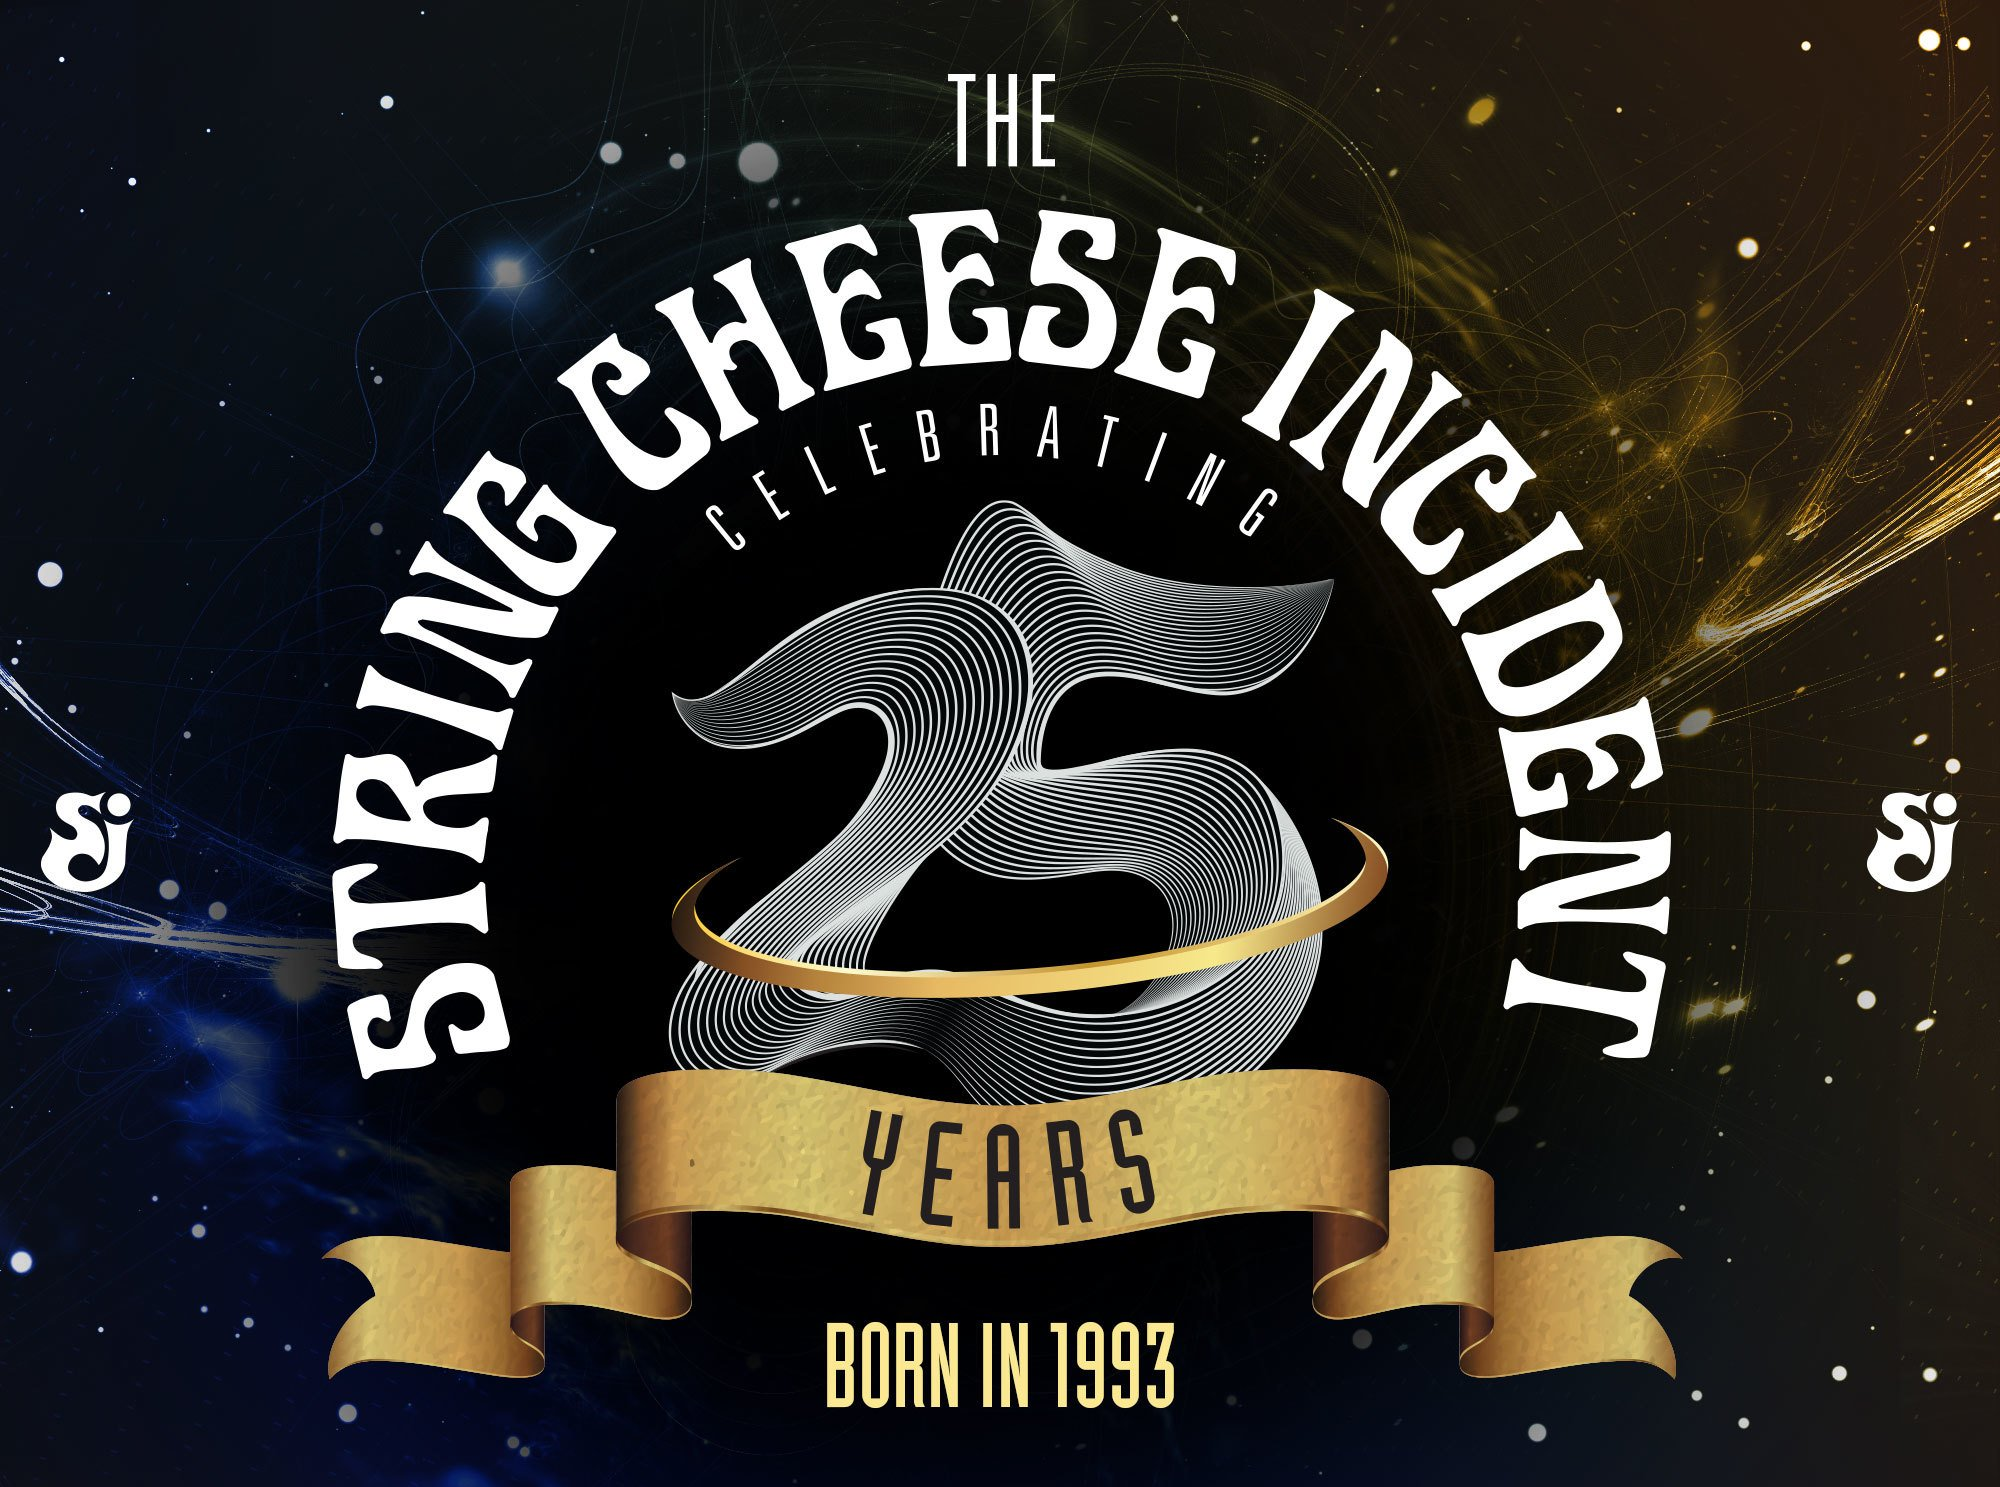 Celebrate 25 Years of Music History with The String Cheese Incident on NYE 2018